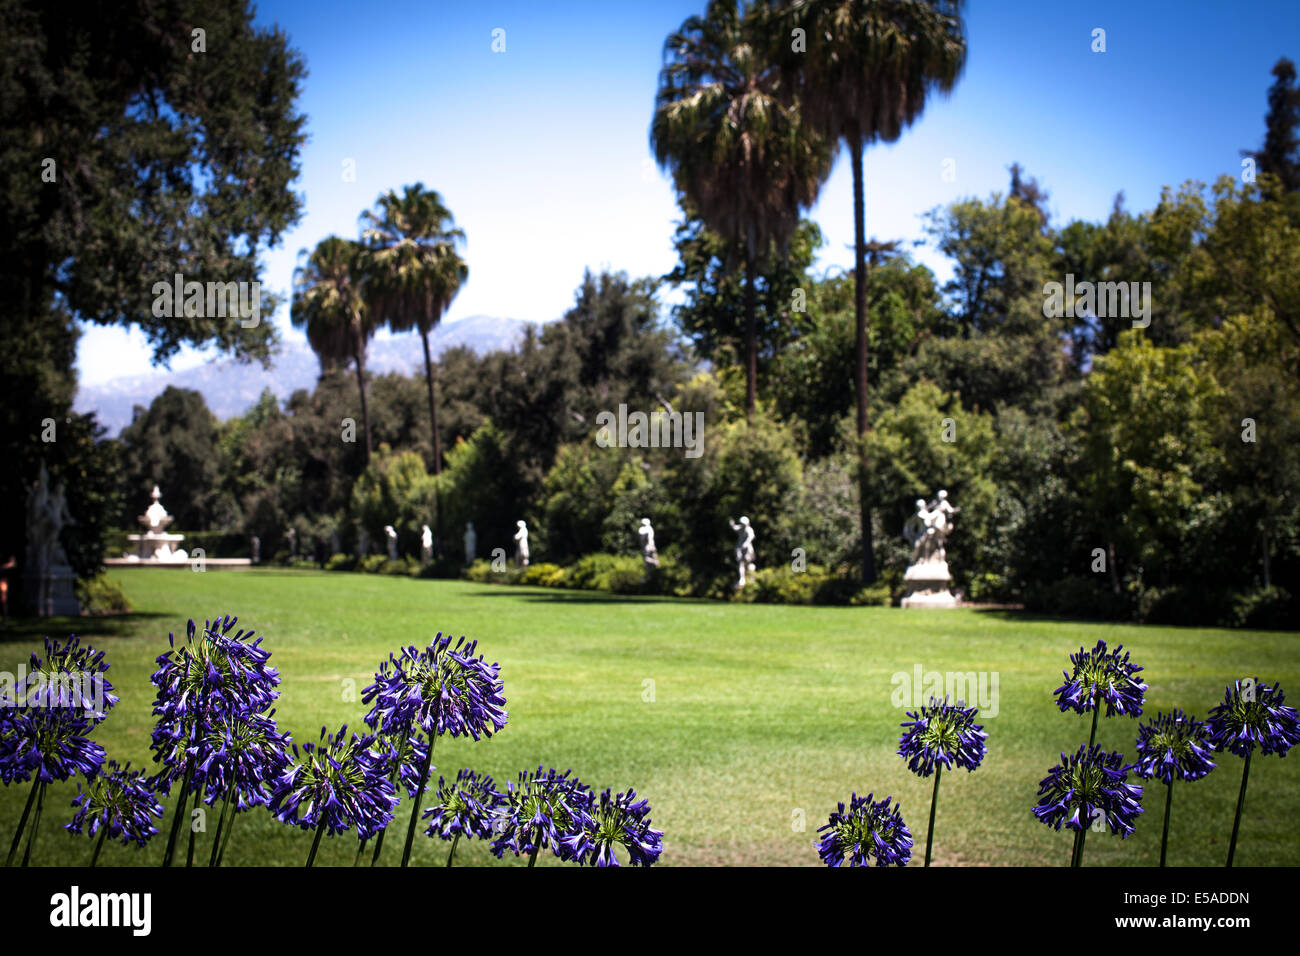 Views of the Huntington Library including the grounds and Japanese Gardens. - Stock Image